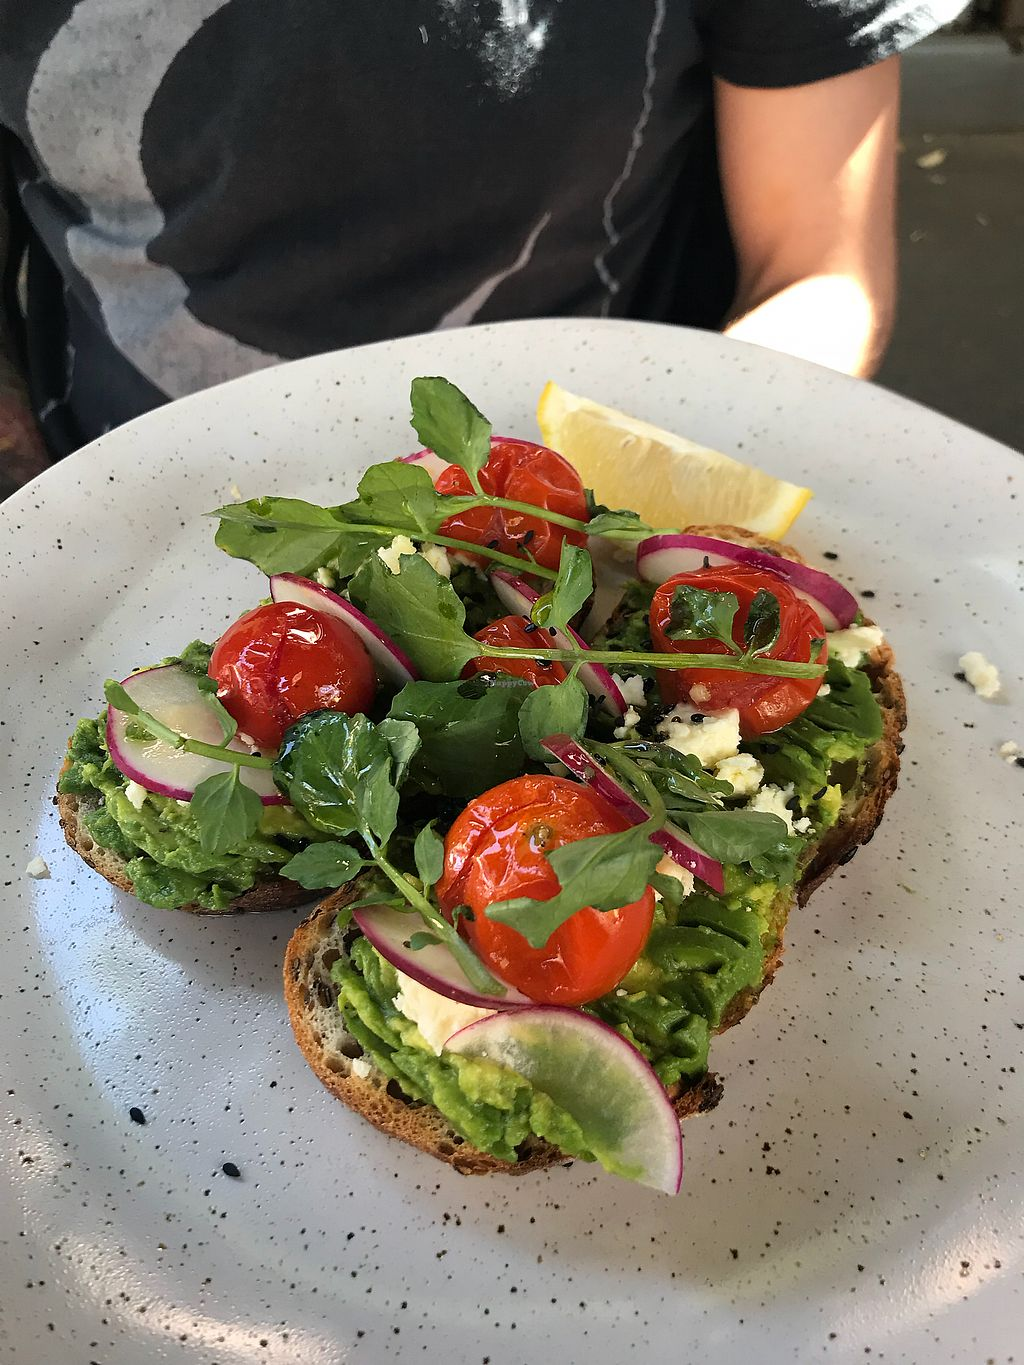 """Photo of Organic Produce Cafe  by <a href=""""/members/profile/LolaNachtigall"""">LolaNachtigall</a> <br/>Avo Feta Toast <br/> April 7, 2018  - <a href='/contact/abuse/image/14067/381902'>Report</a>"""